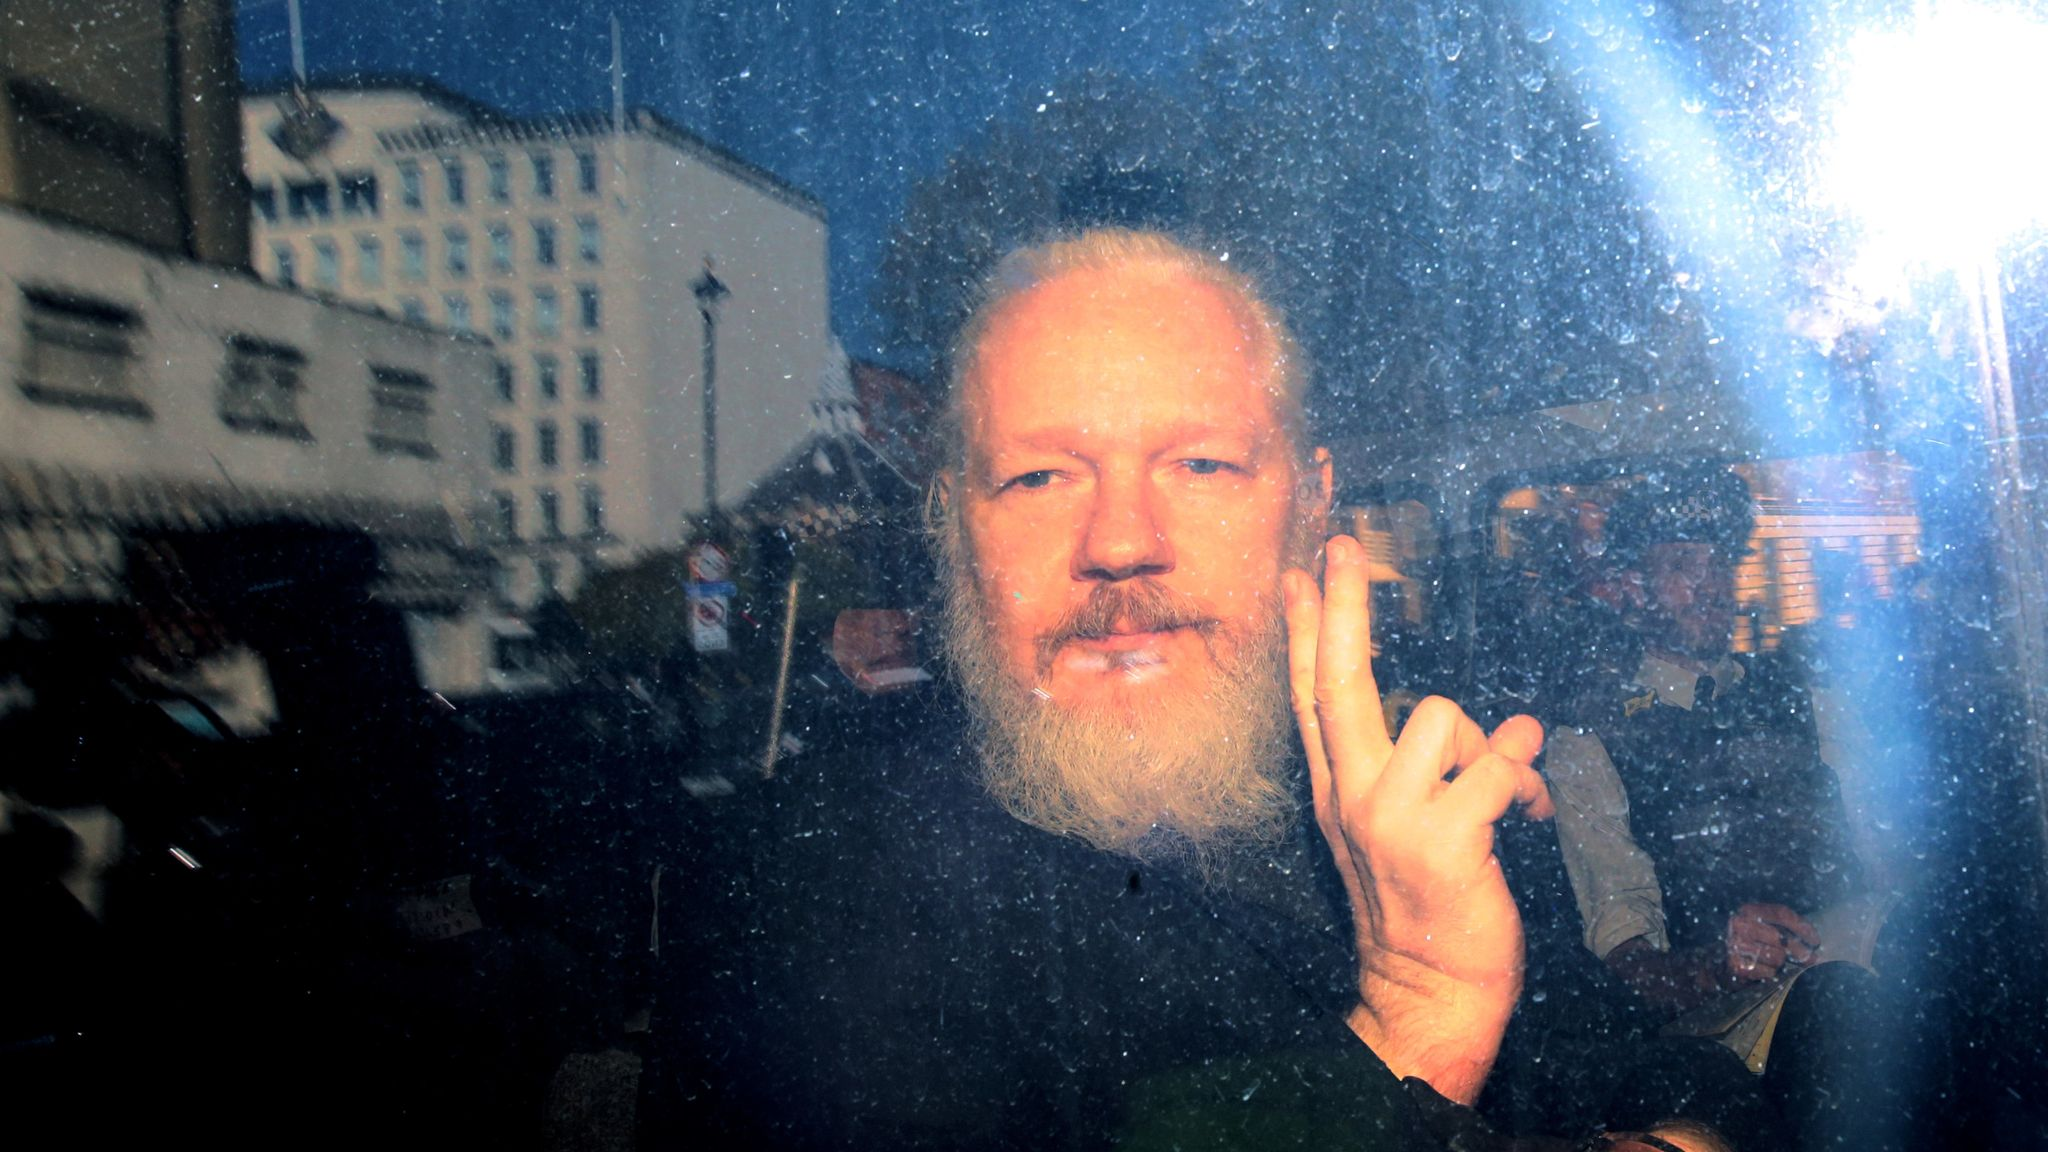 Julian Assange 'moved to medical wing' in Belmarsh prison over 'significantly deteriorated' health